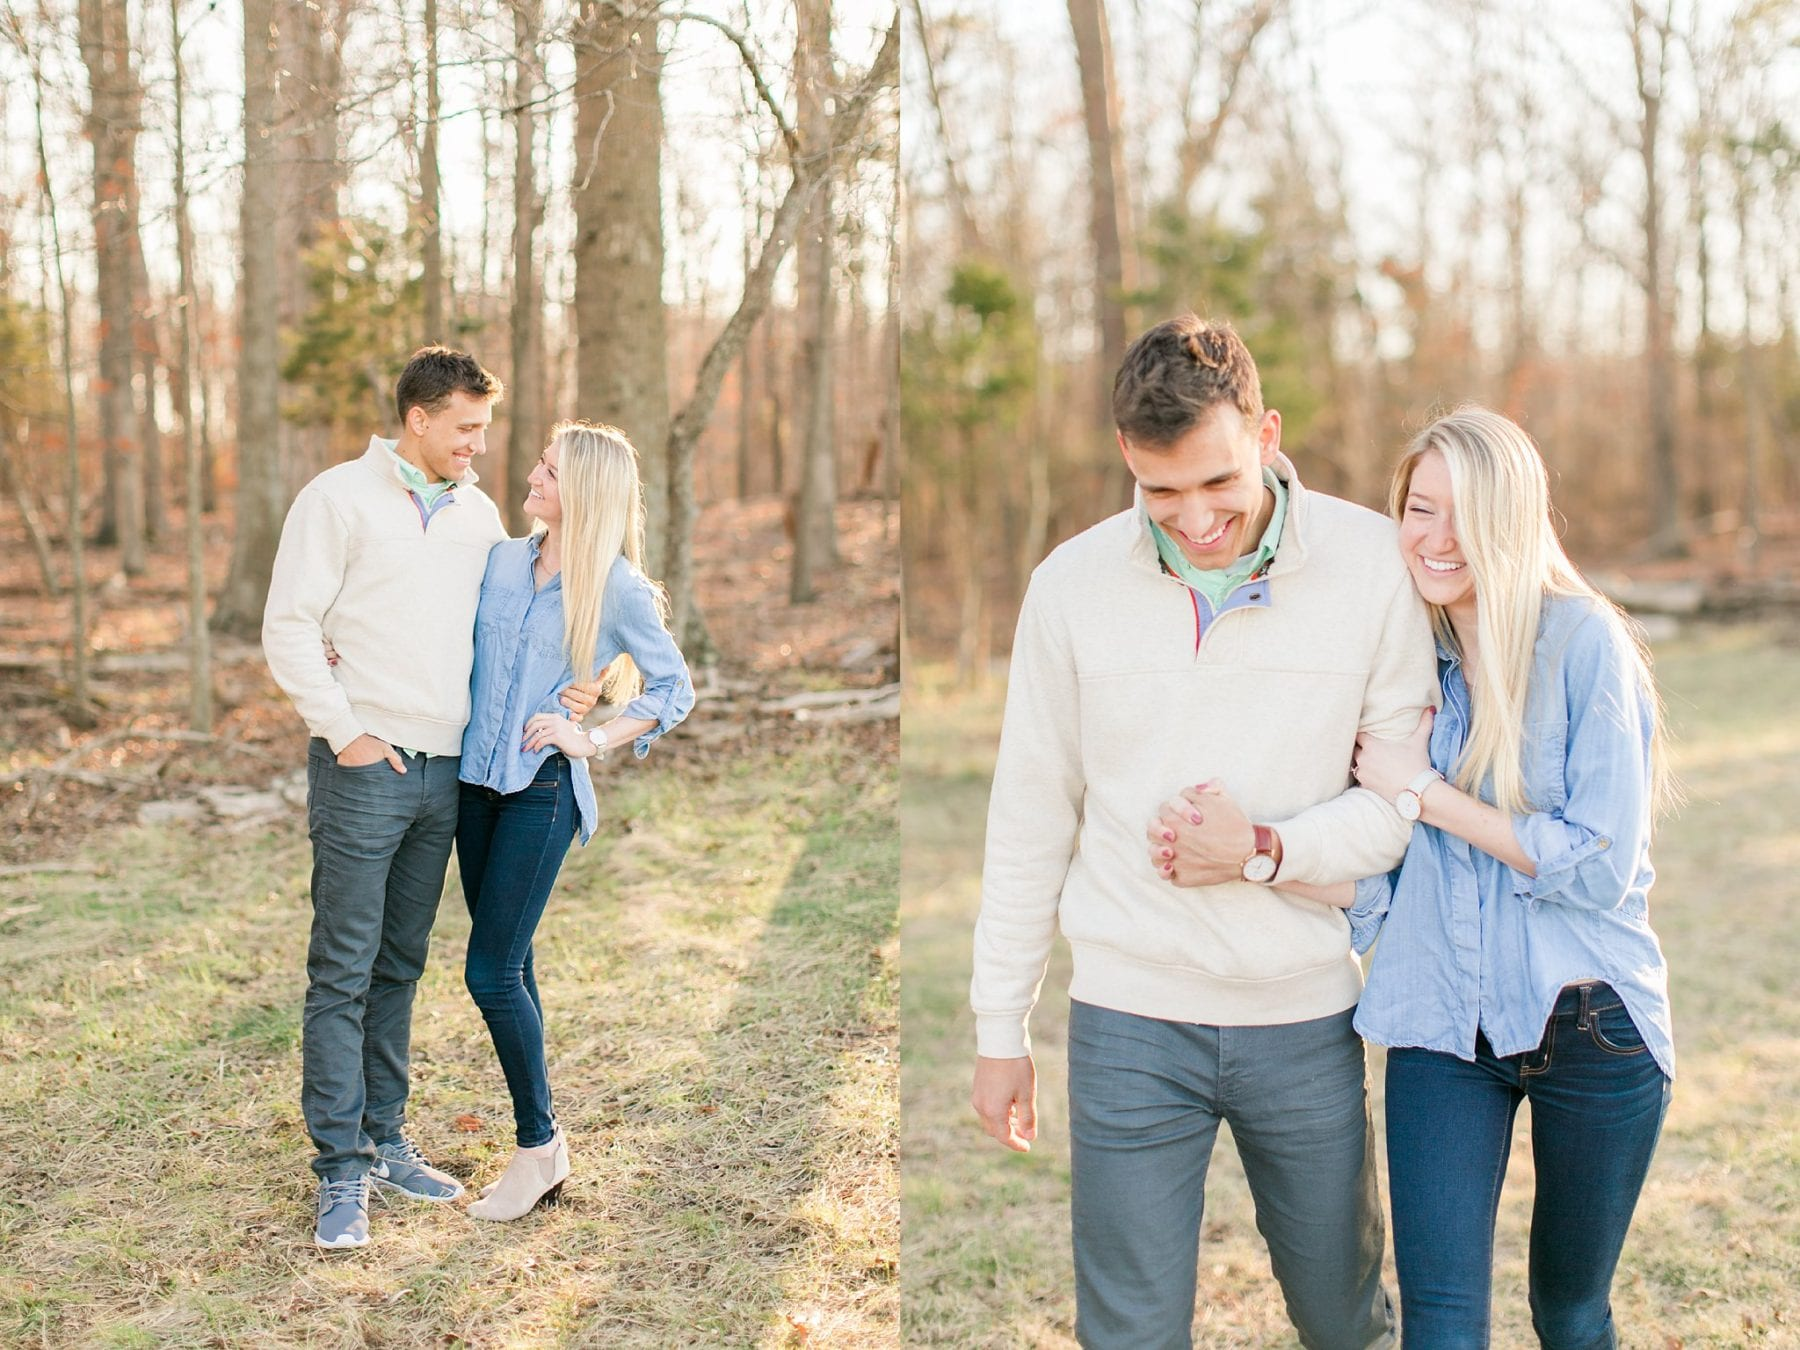 Manassas Battlefield Engagement Session Virginia Wedding Photographer Danielle & Charlie Megan Kelsey Photography-5077.jpg